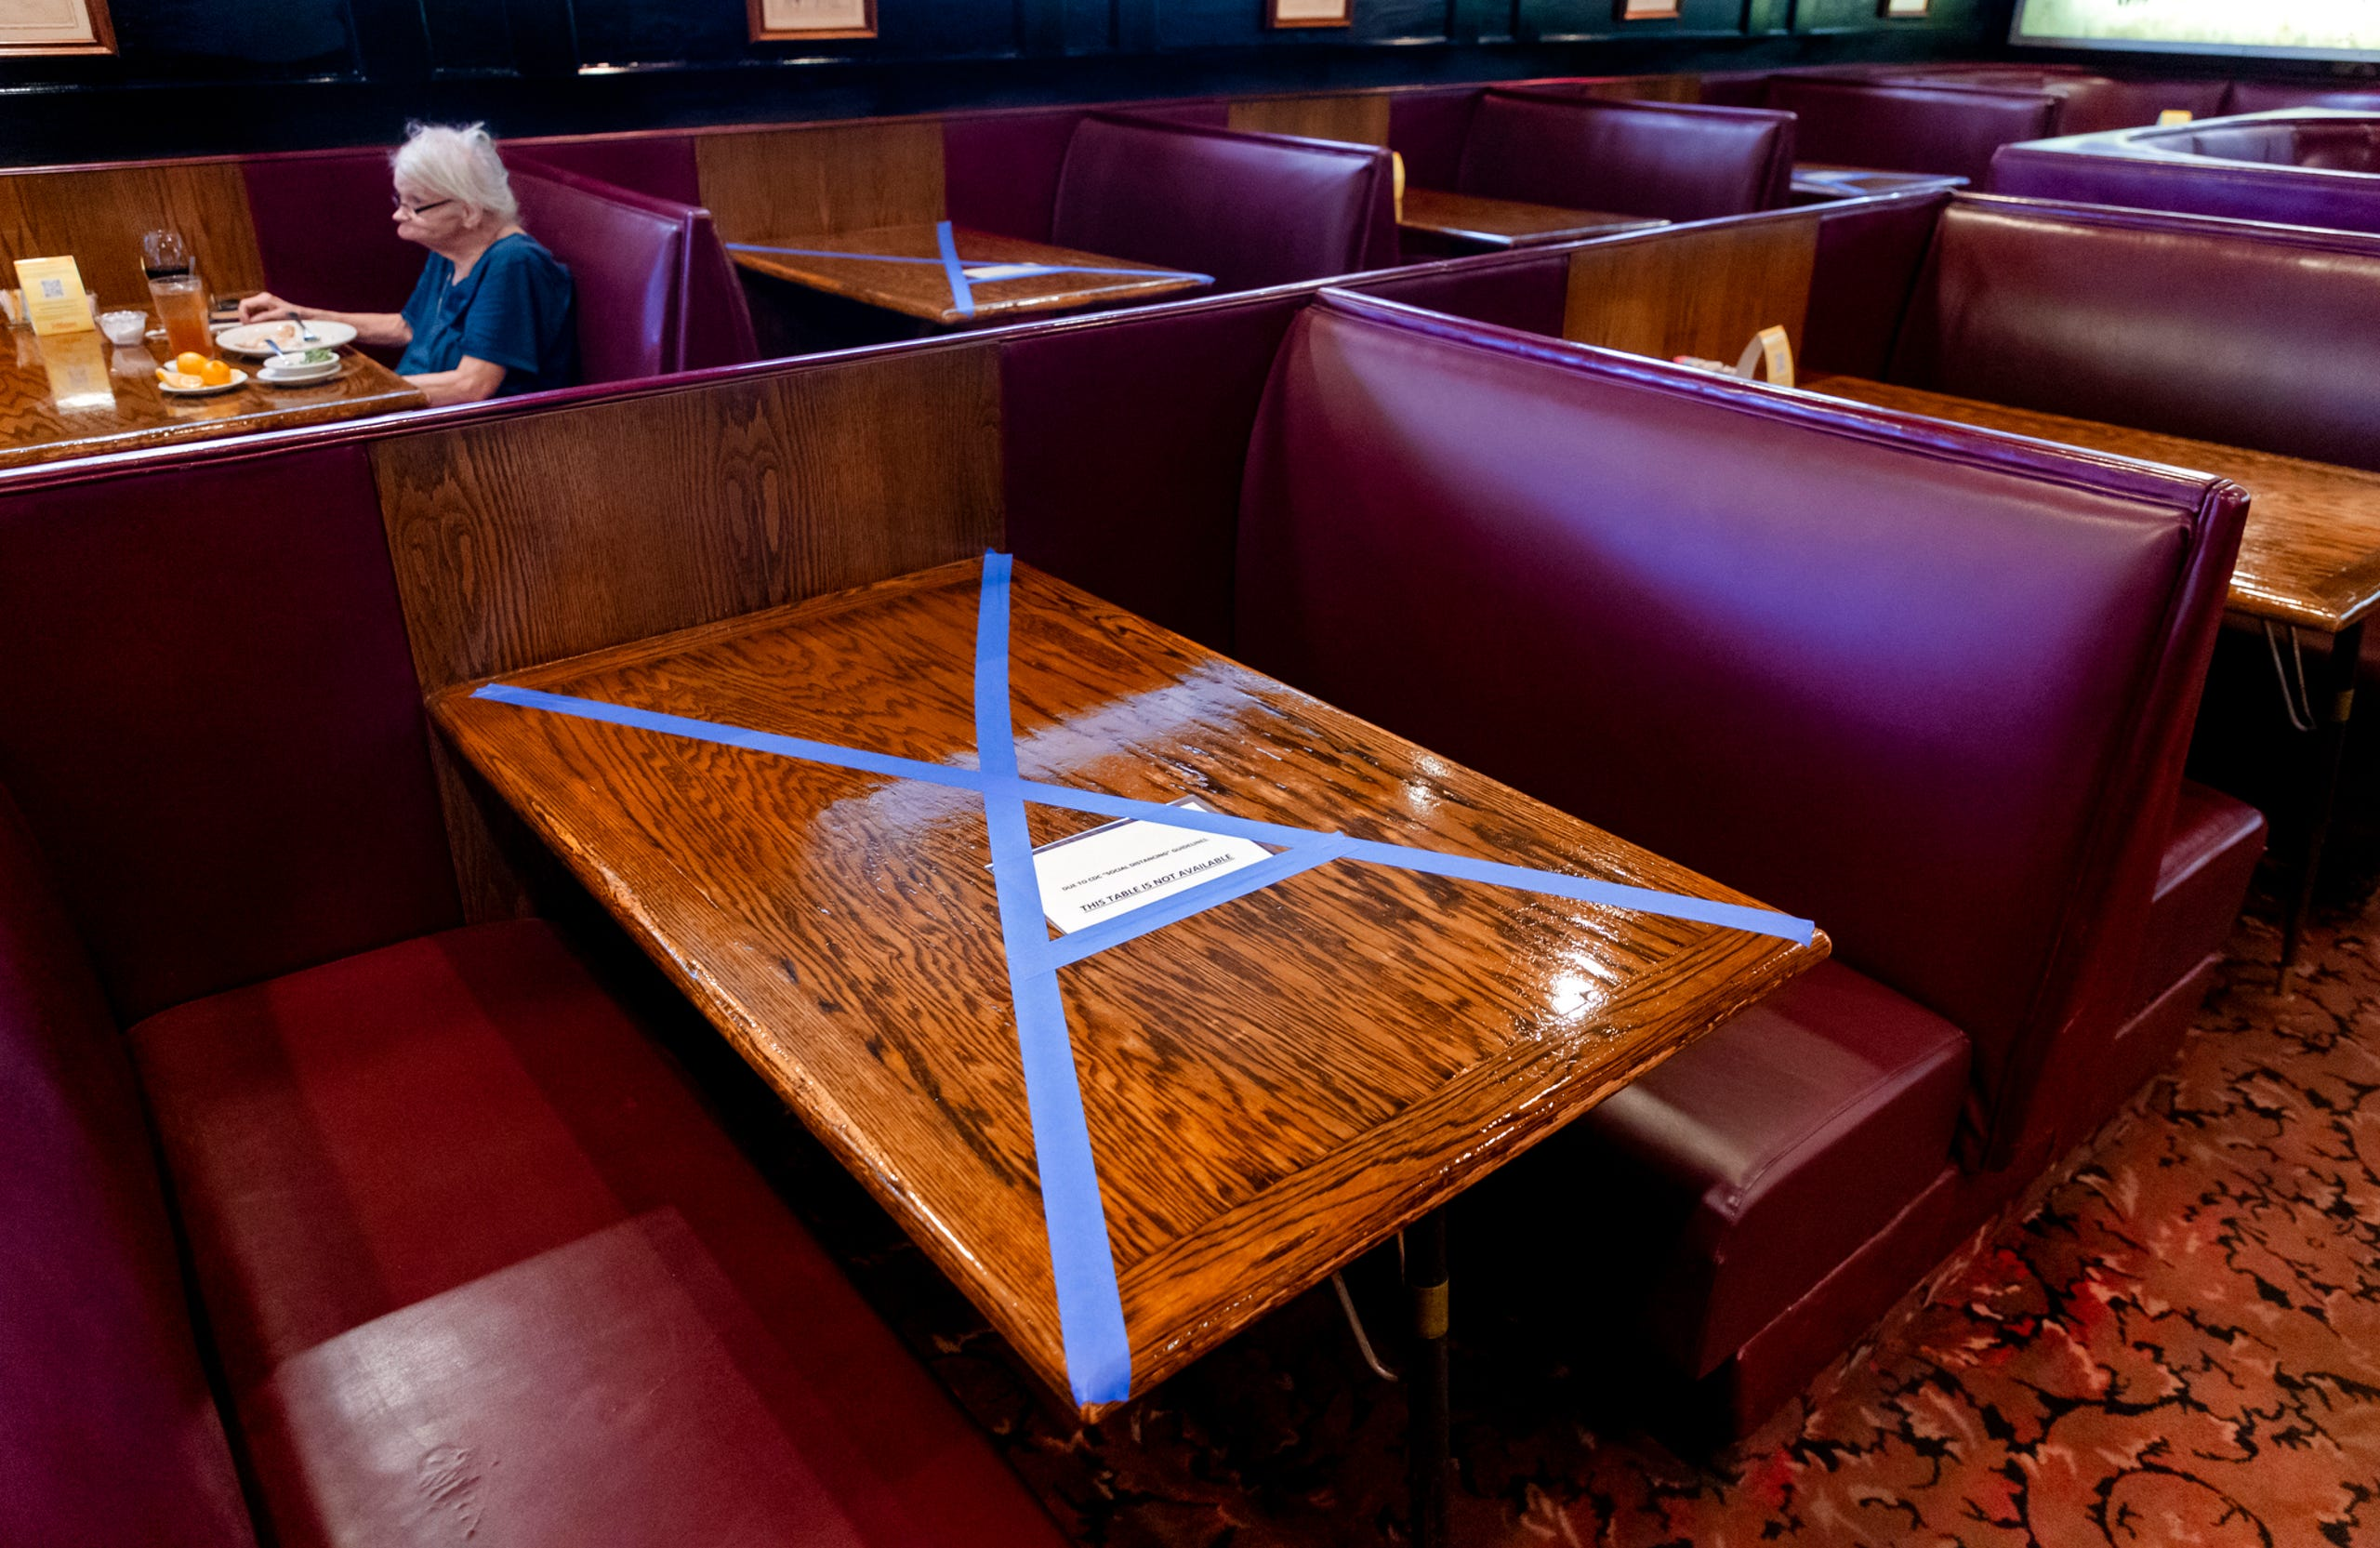 Closed seats to allow for social distancing at Cattlemen's Steakhouse in Oklahoma City, Okla. on Friday, May 1, 2020, as Cattlemen's and other restaurants begin their gradual reopening on Friday after being closed due to the Coronavirus Pandemic.[Chris Landsberger/The Oklahoman]